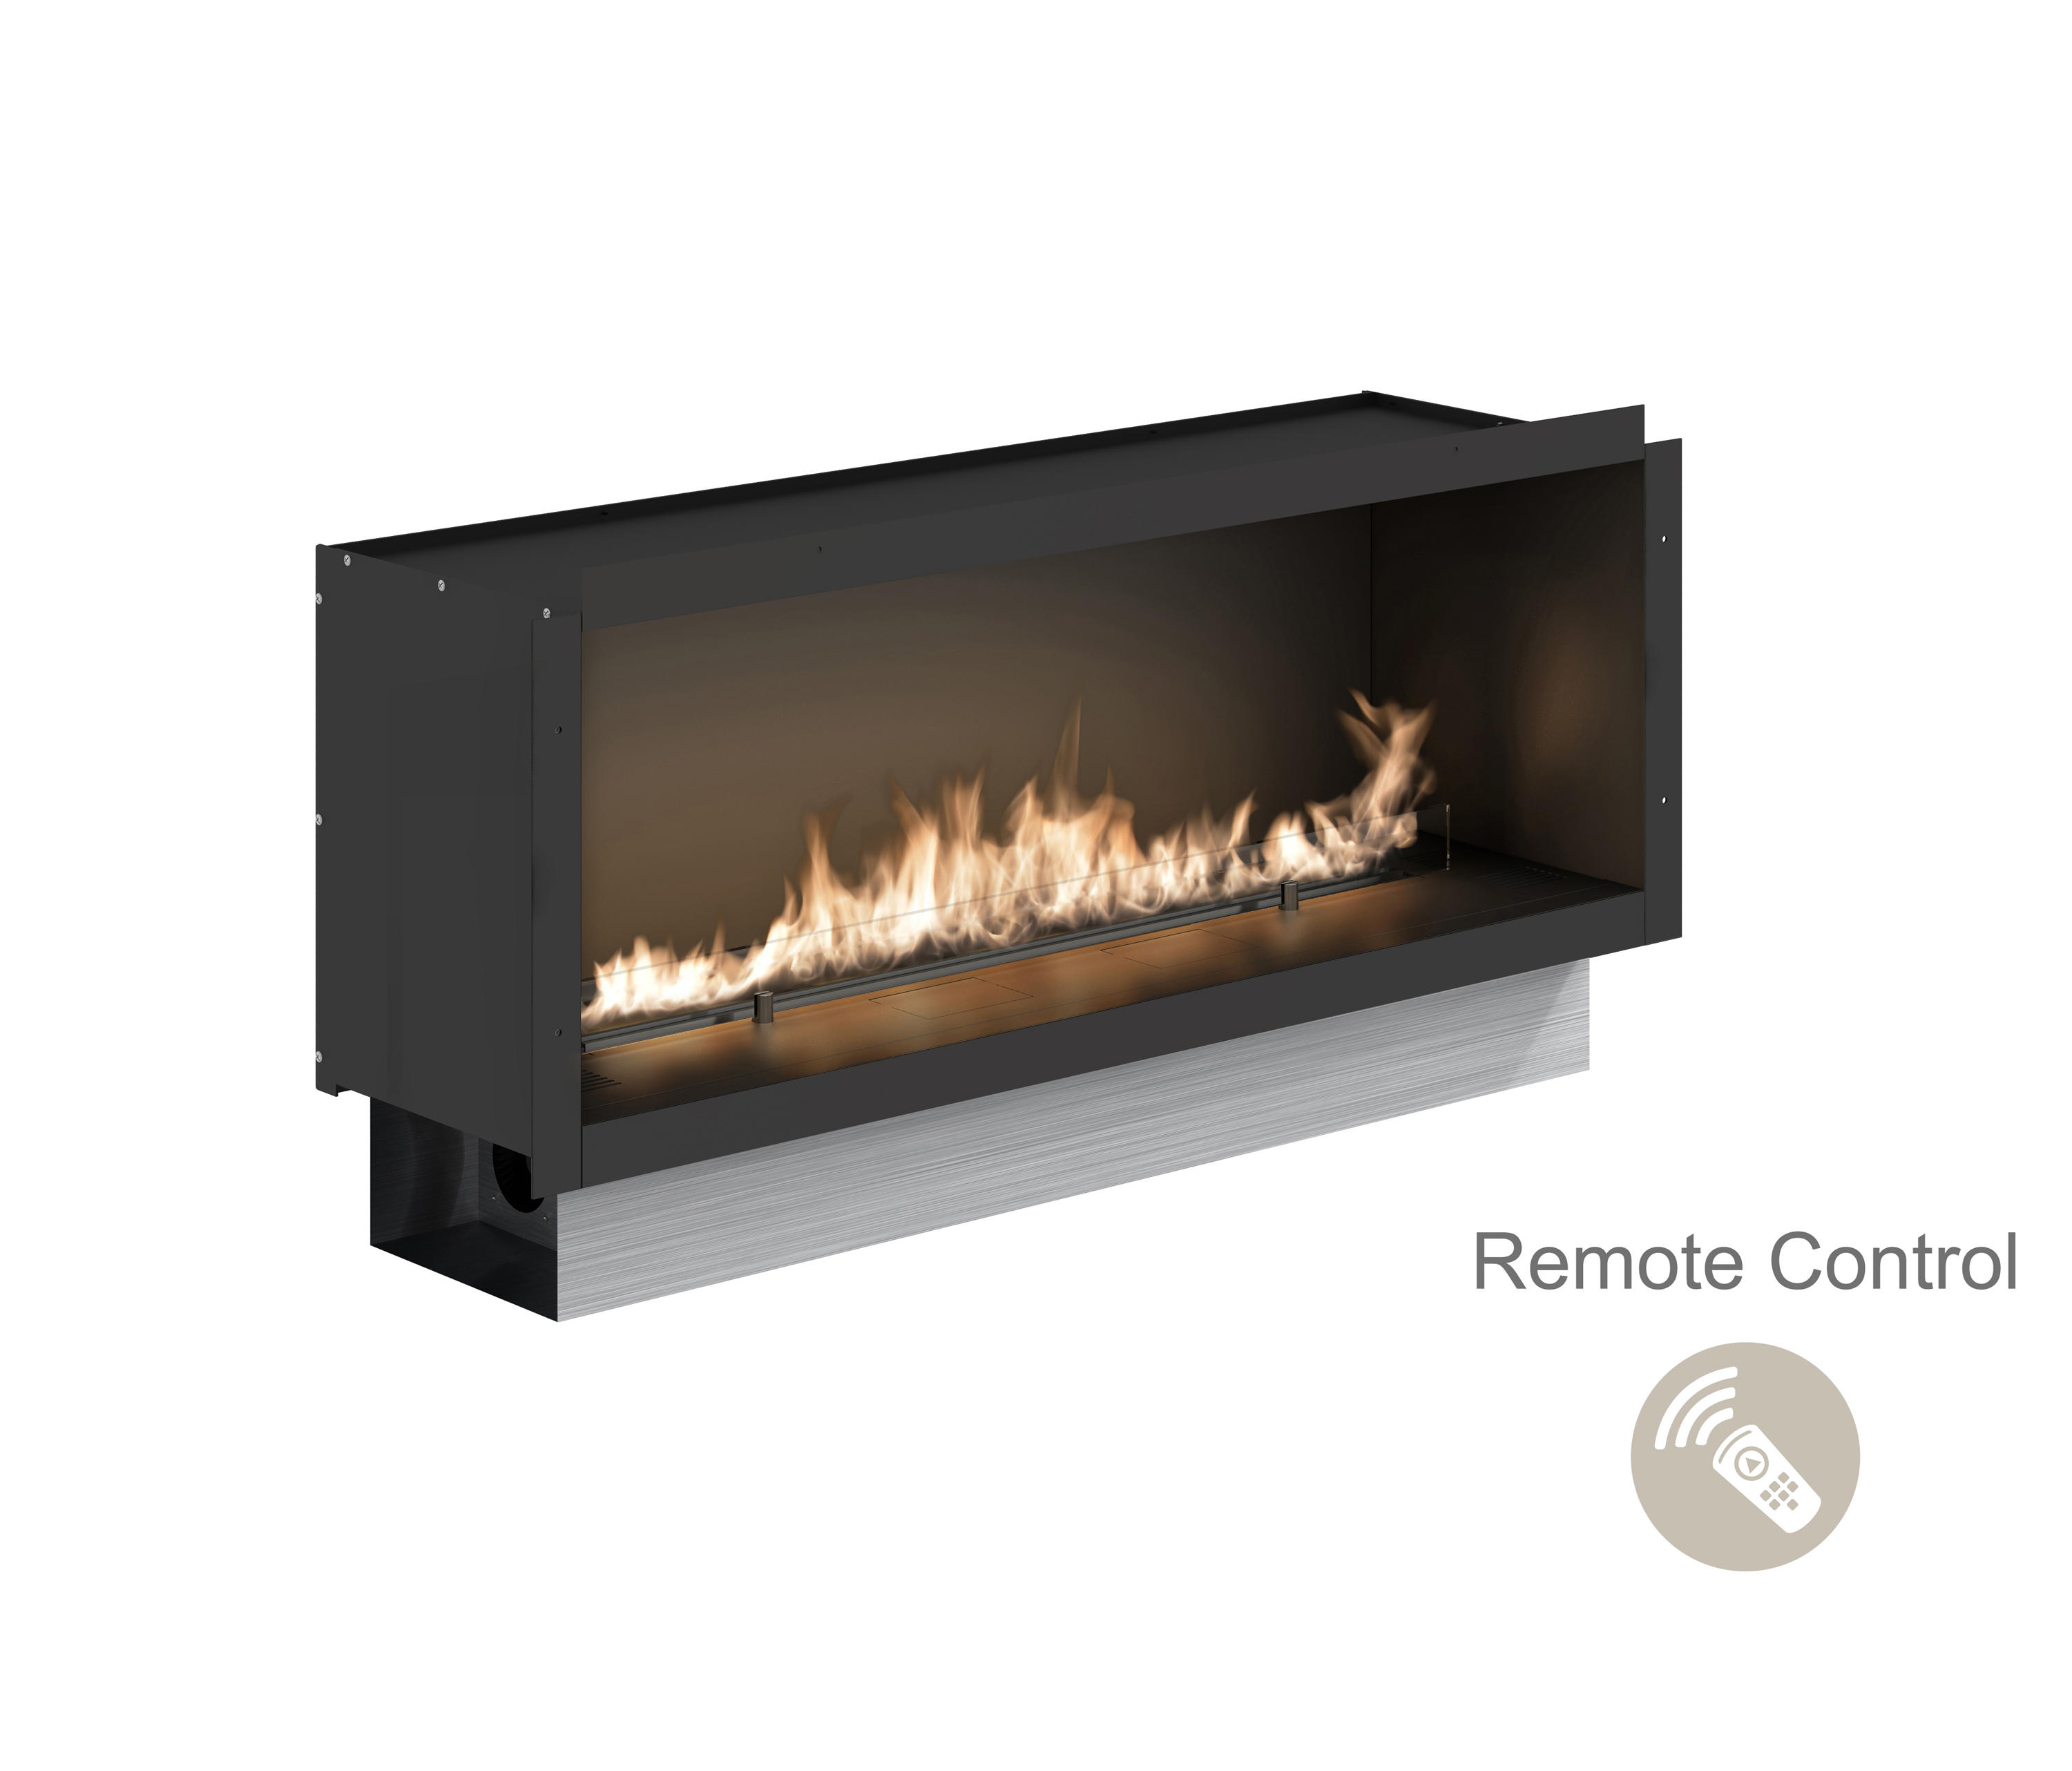 FIRE LINE AUTOMATIC 2 MODEL E IN CASING - Ventless ethanol fires ...